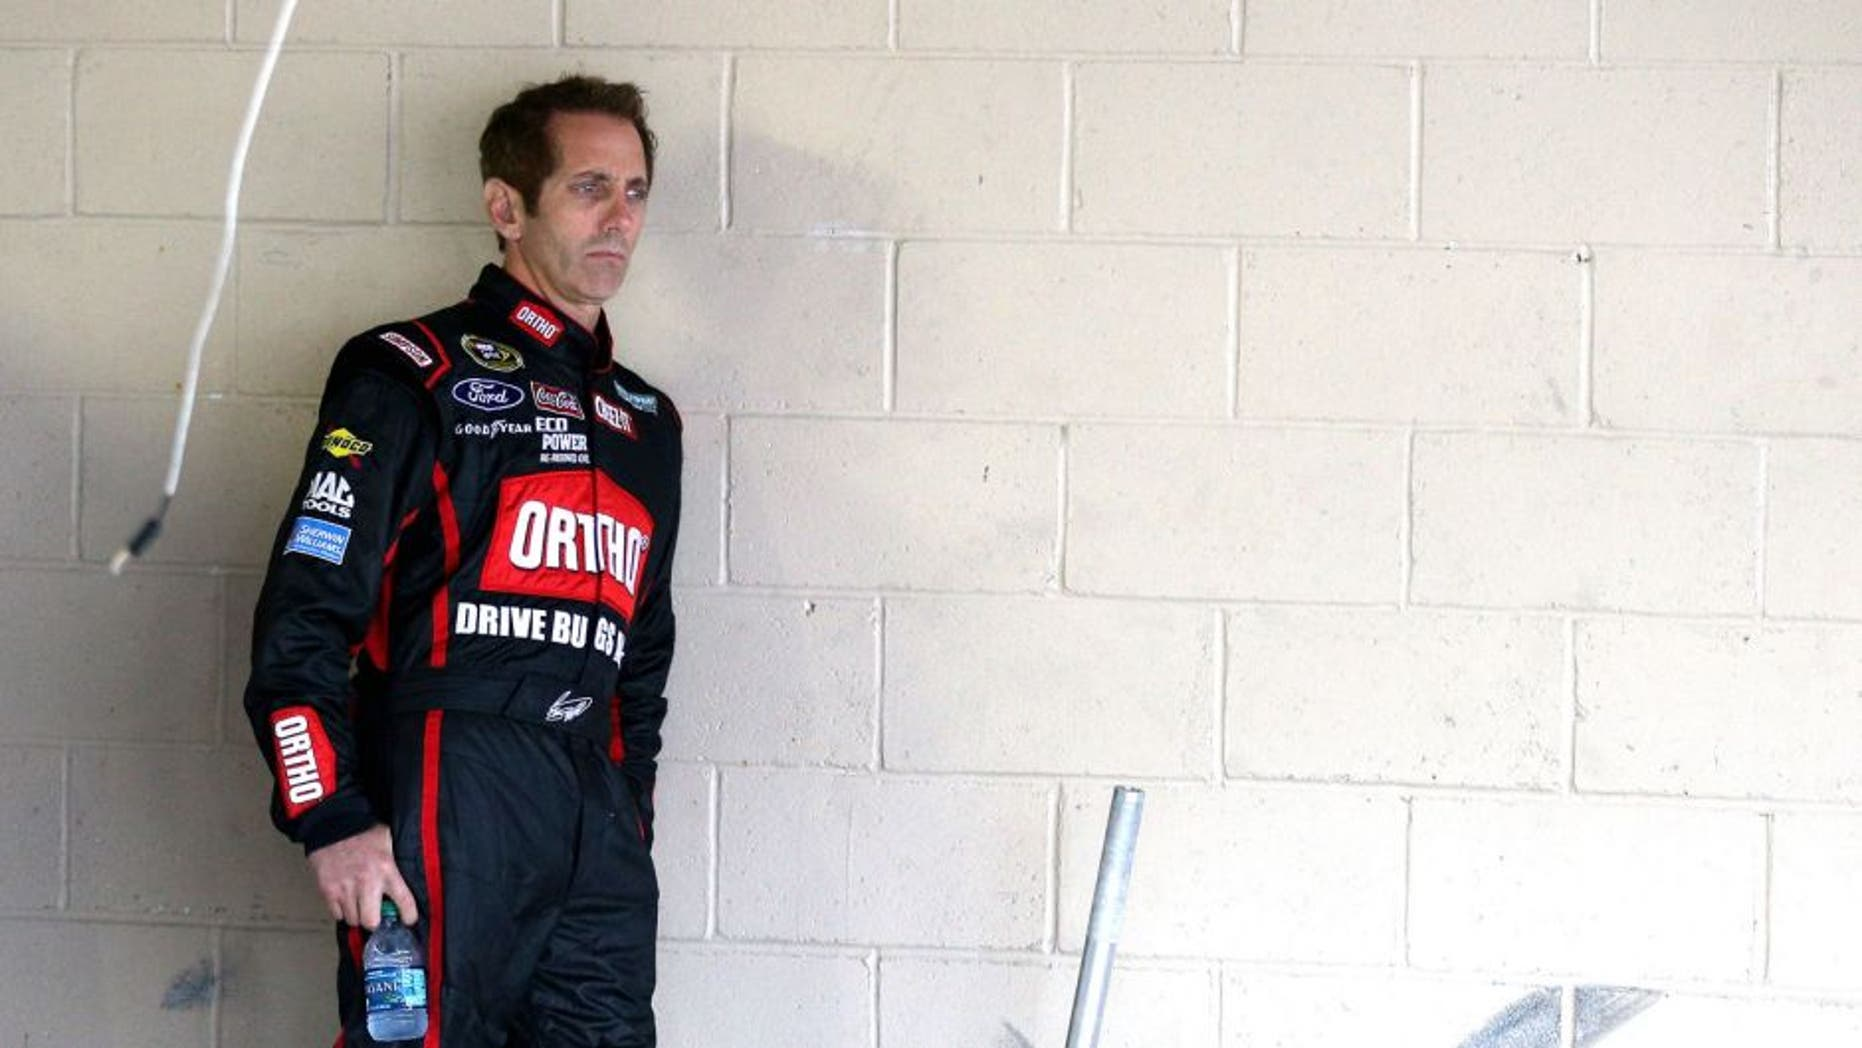 DOVER, DE - OCTOBER 03: Greg Biffle, driver of the #16 Ortho Ford, looks on in the garage area during practice for the NASCAR Sprint Cup Series AAA 400 at Dover International Speedway on October 3, 2015 in Dover, Delaware. (Photo by Patrick Smith/Getty Images)